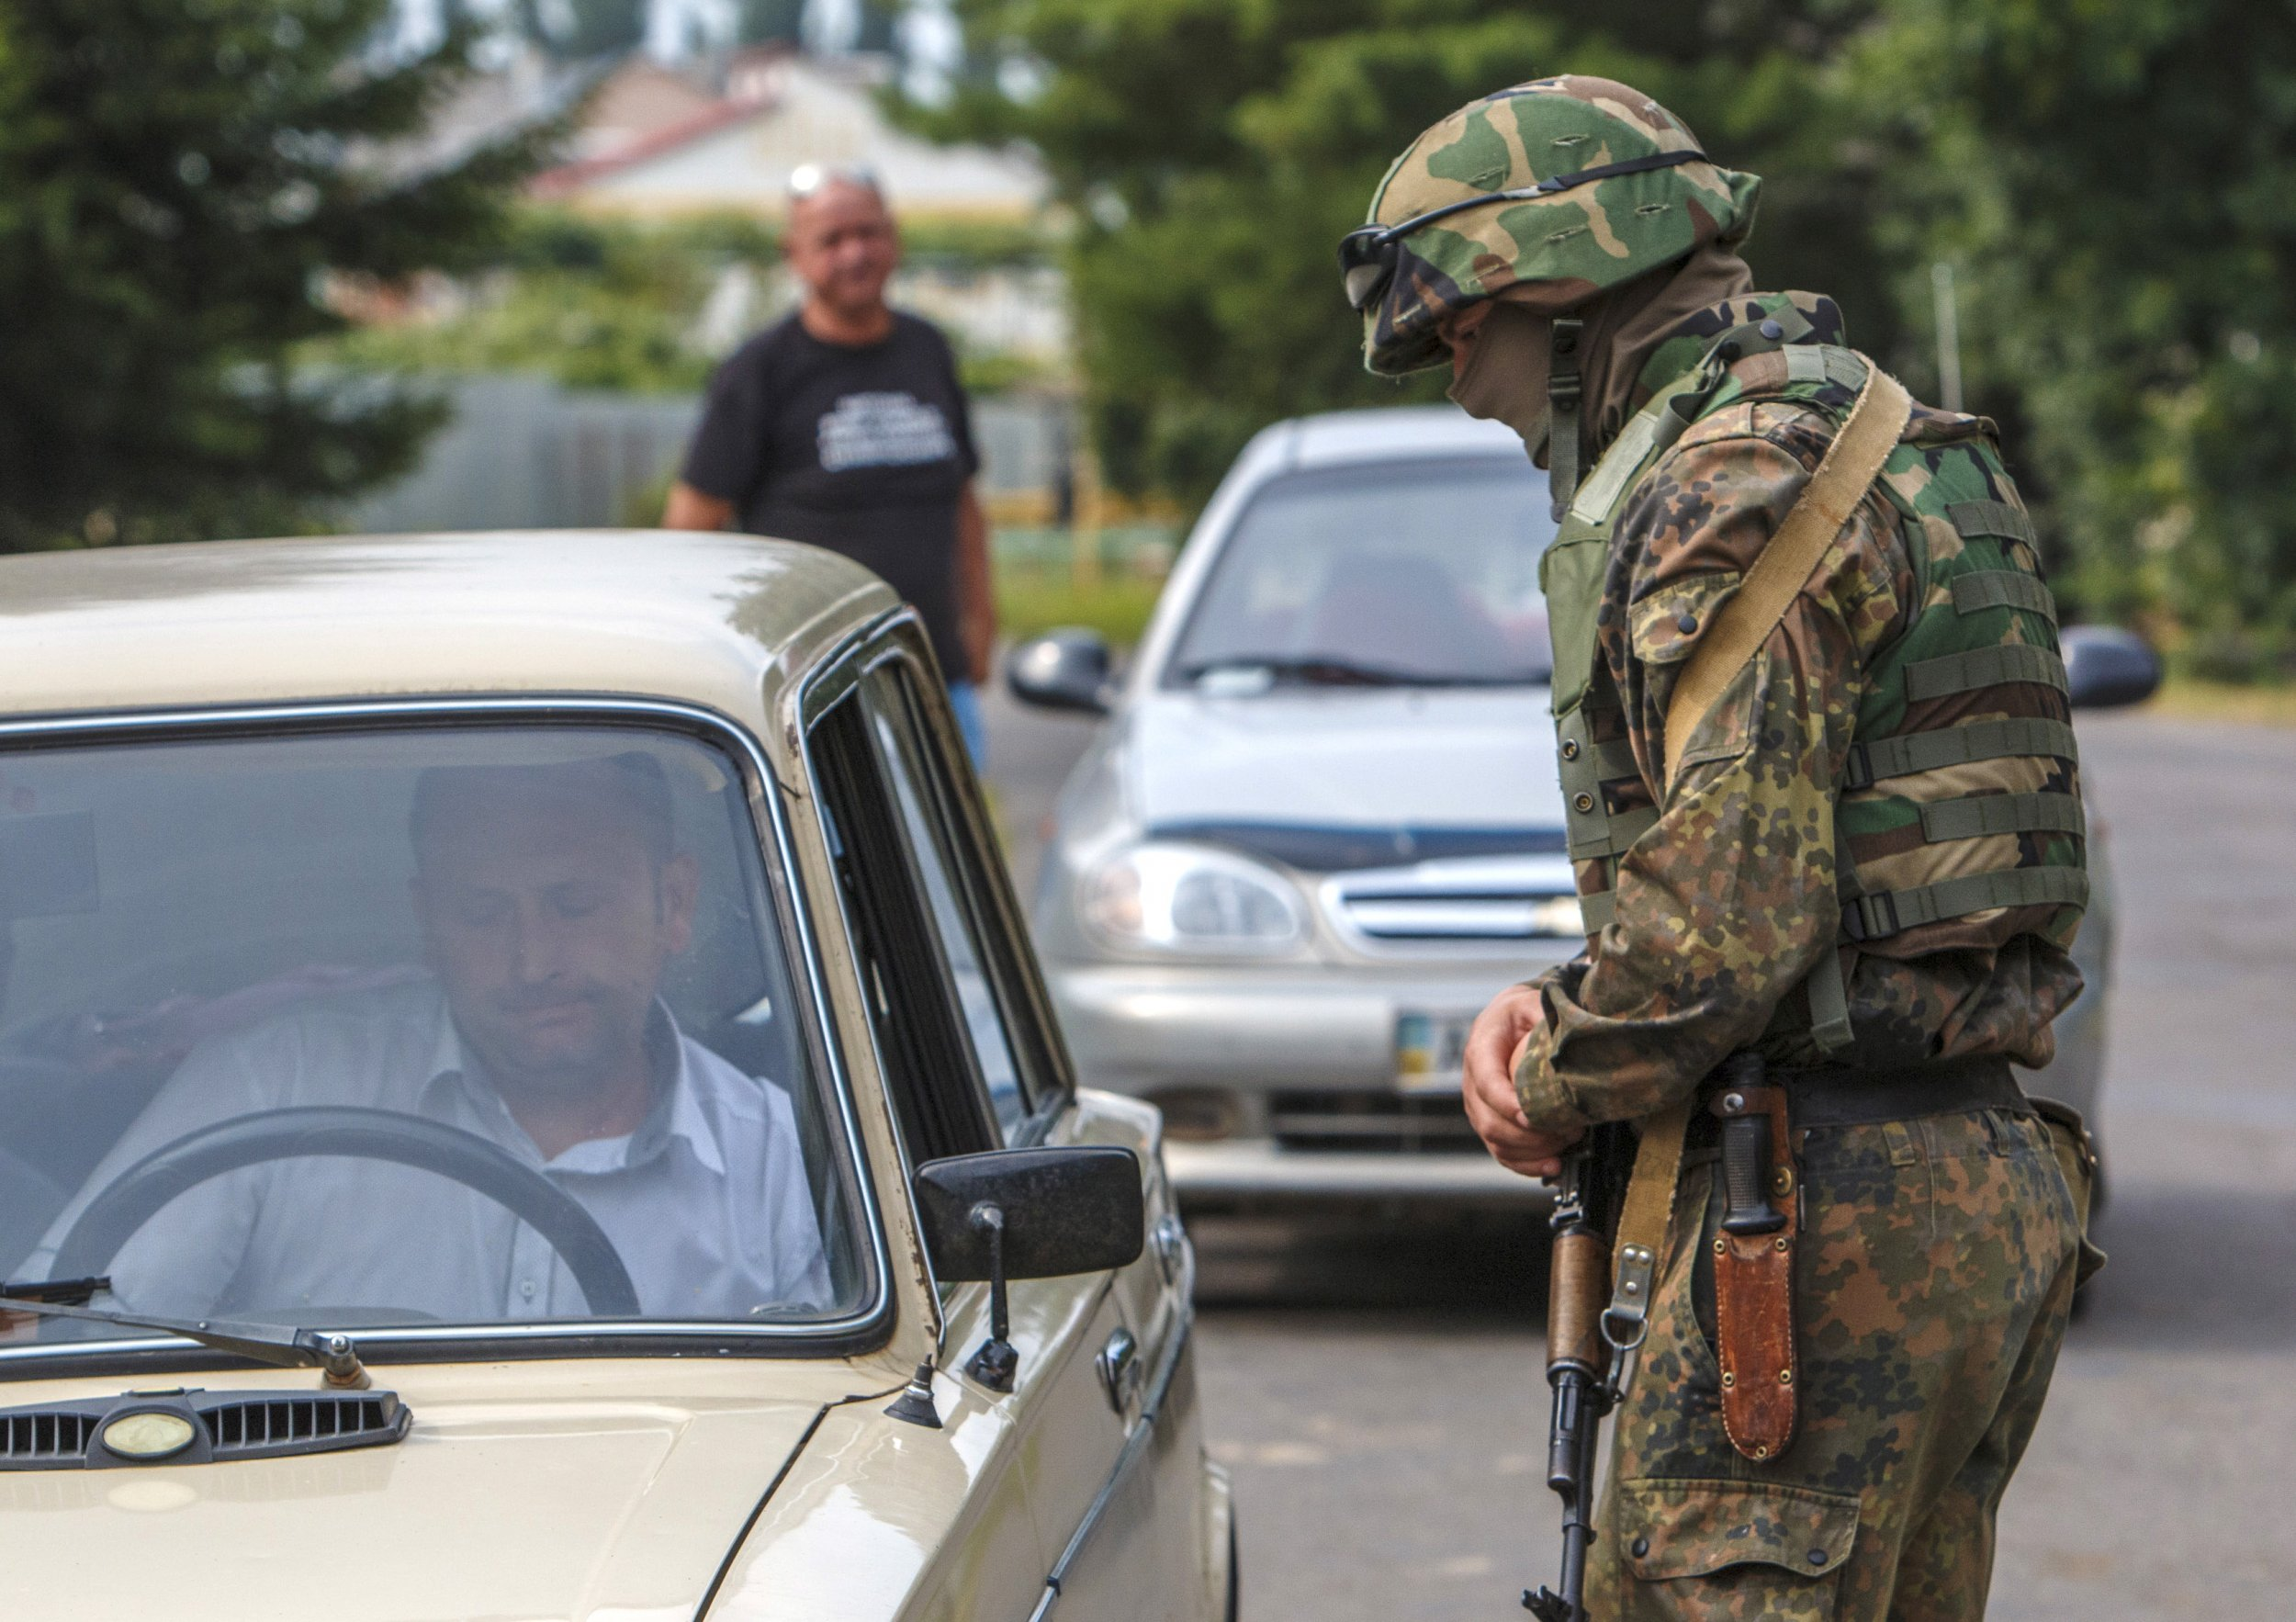 Ukrainian serviceman searches car